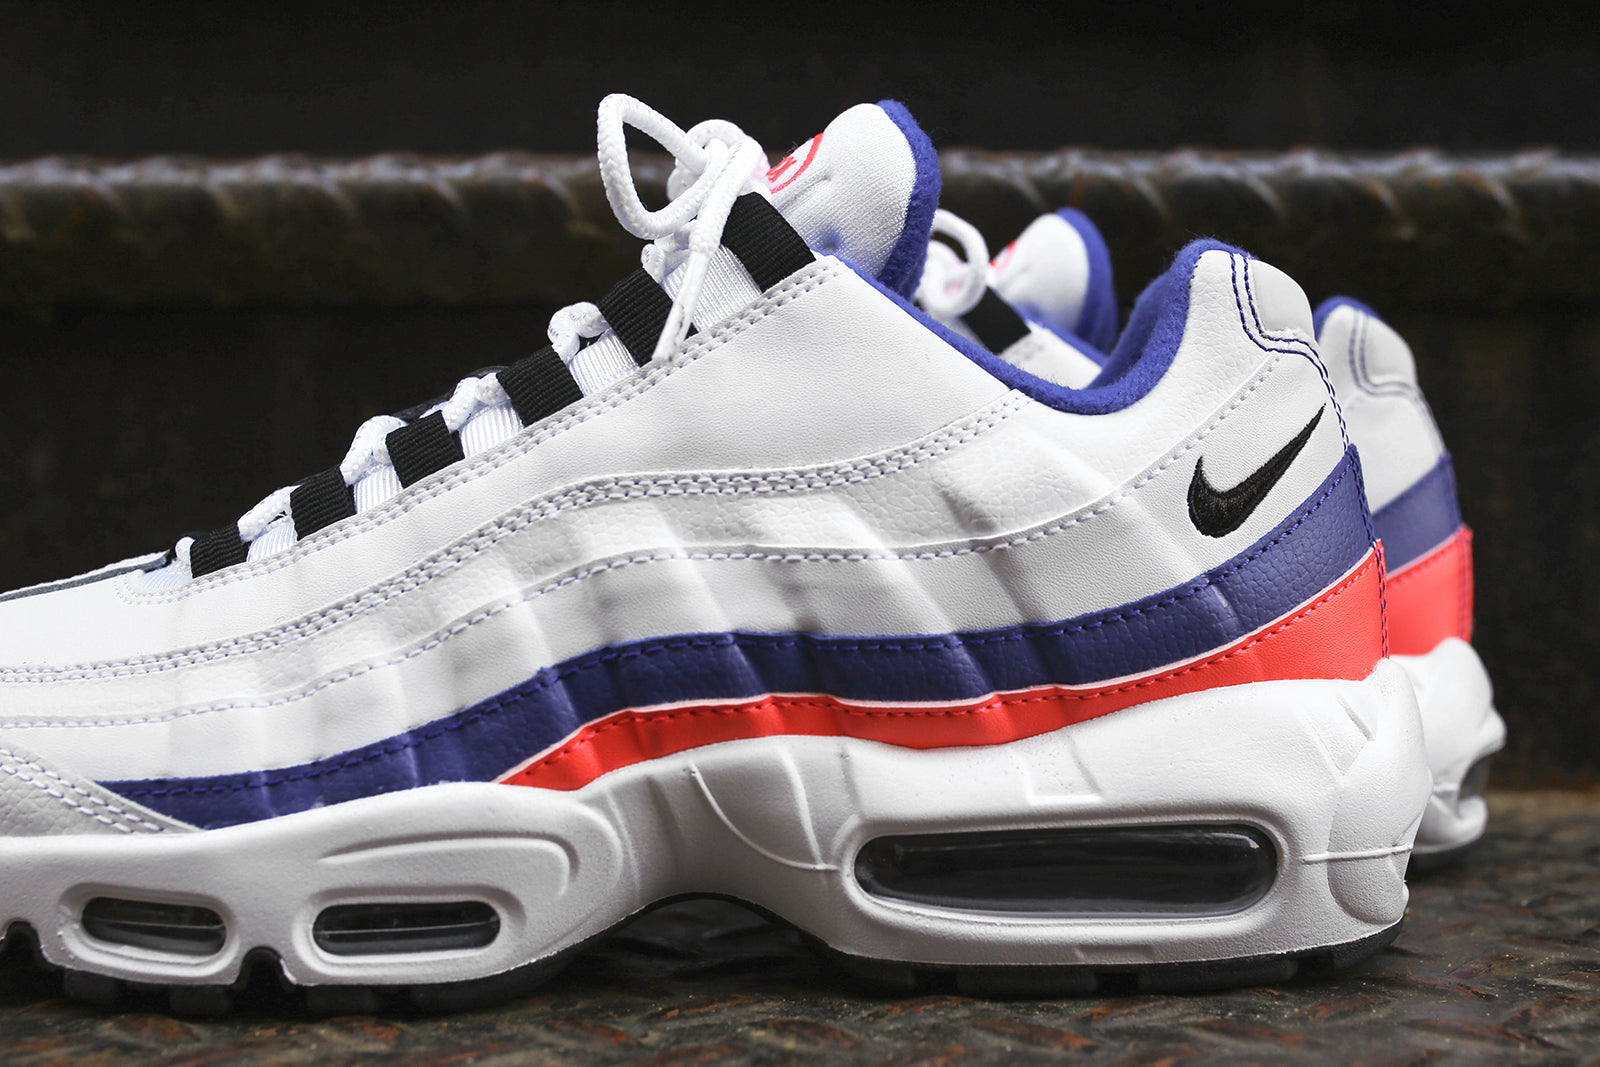 40a1c93960 Buy nike air max 95 red white blue > up to 75% Discounts